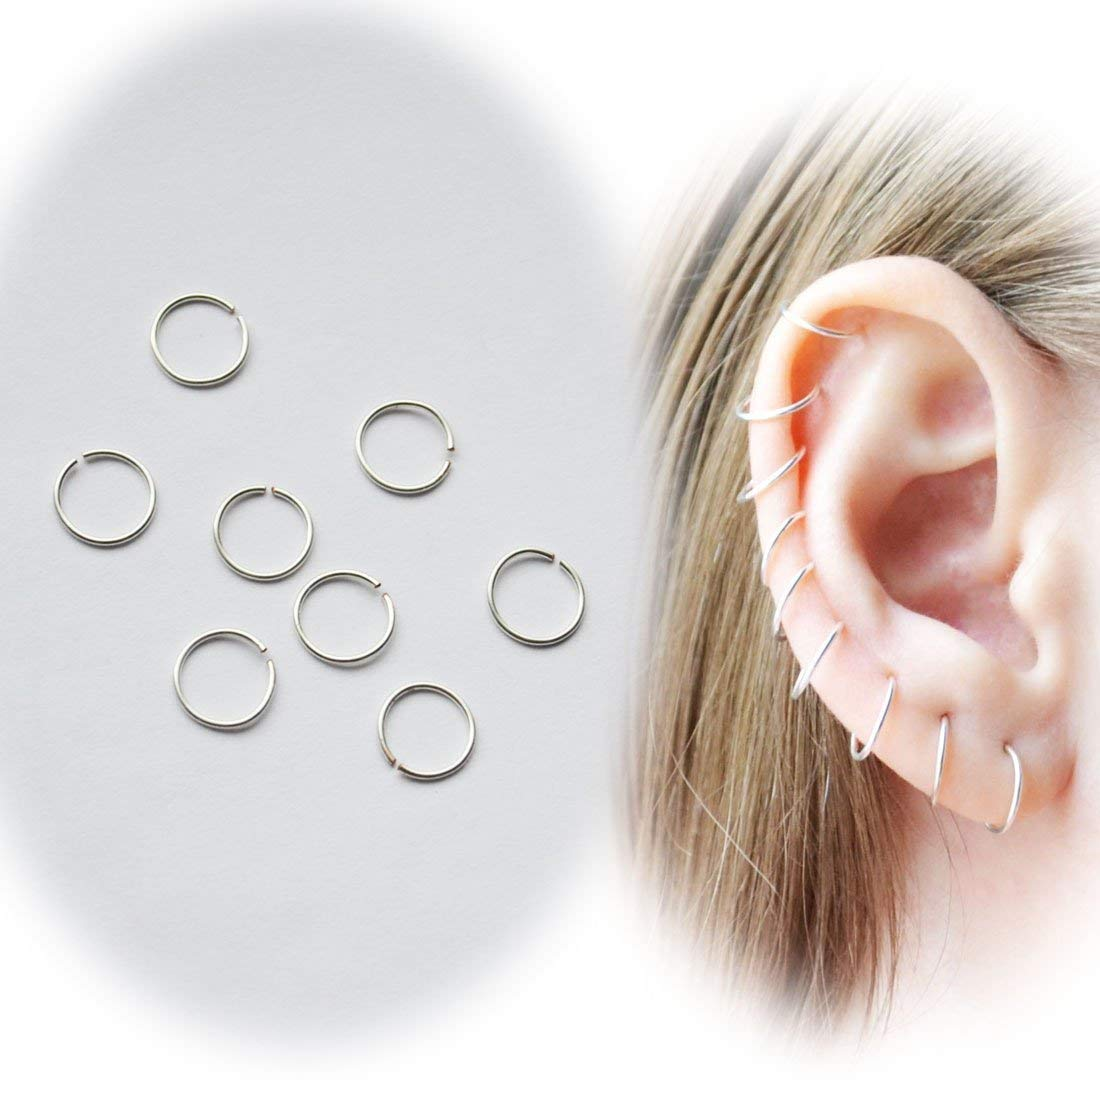 Get Quotations Set Of 40 Pieces Mini Silver Plated Hoops One Size 8 Mm 24 Gauge Sensitive Ears